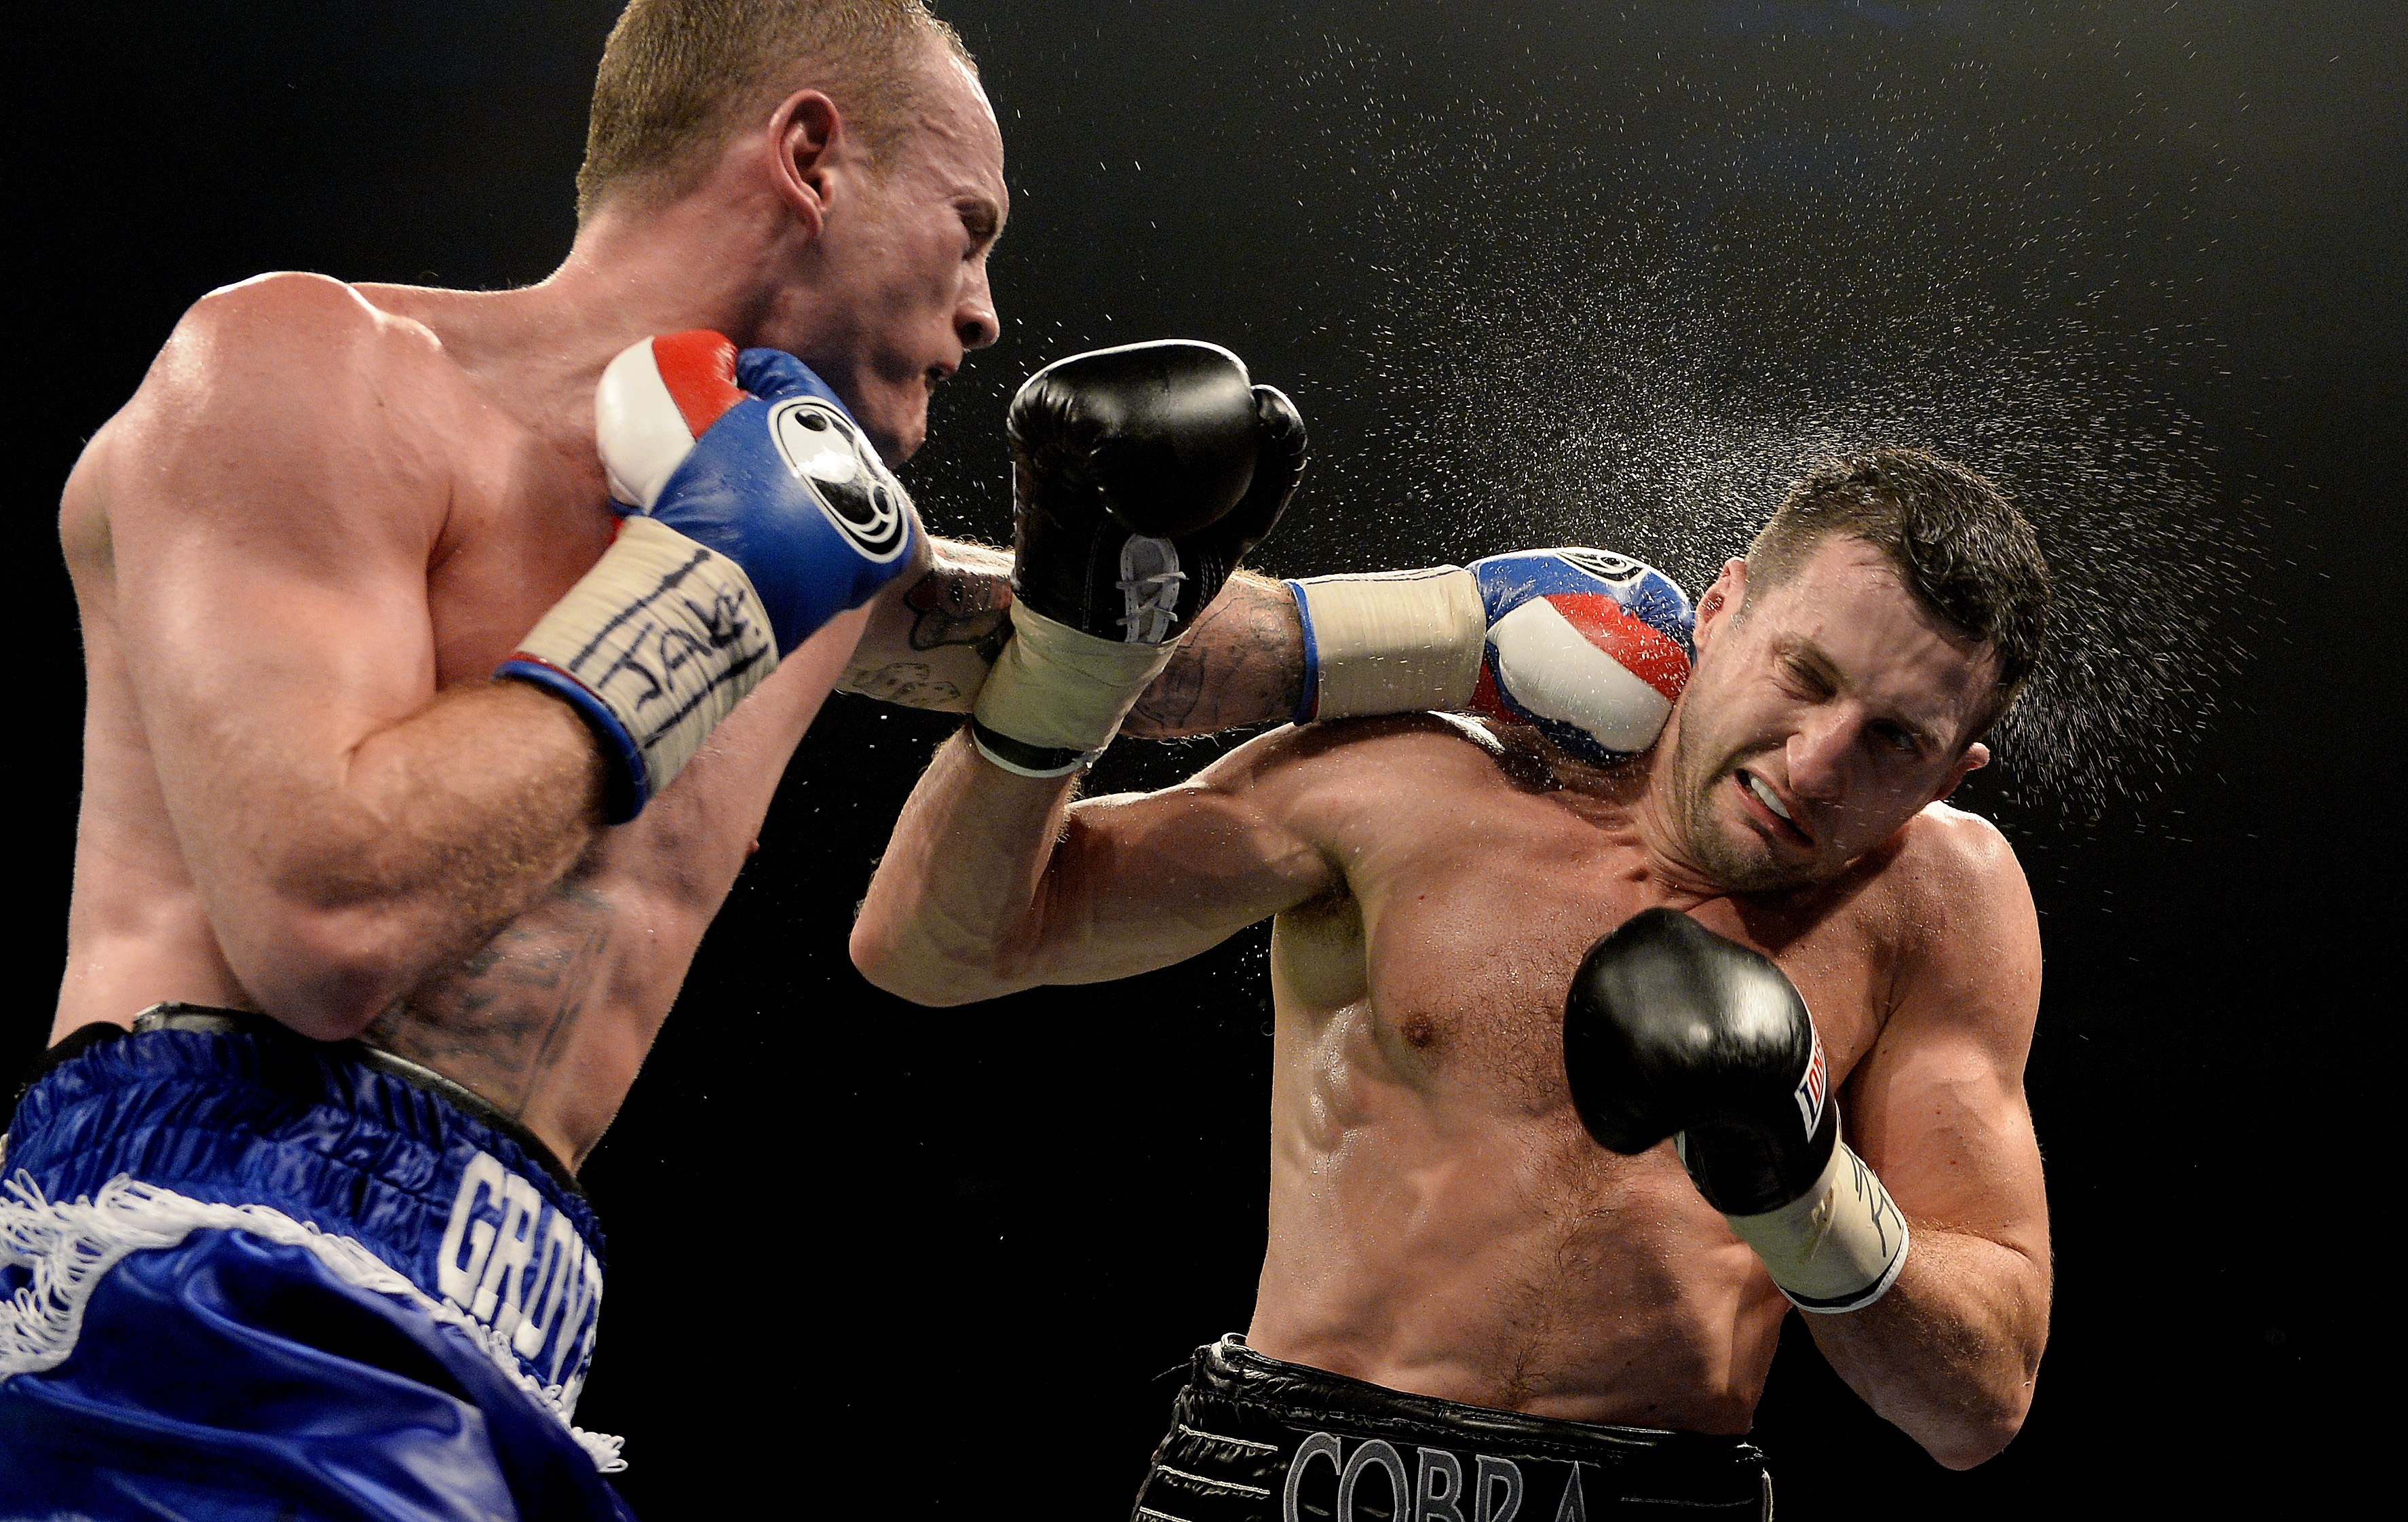 Carl Froch insisted he will come out of retirement and face rival George Groves for the third time